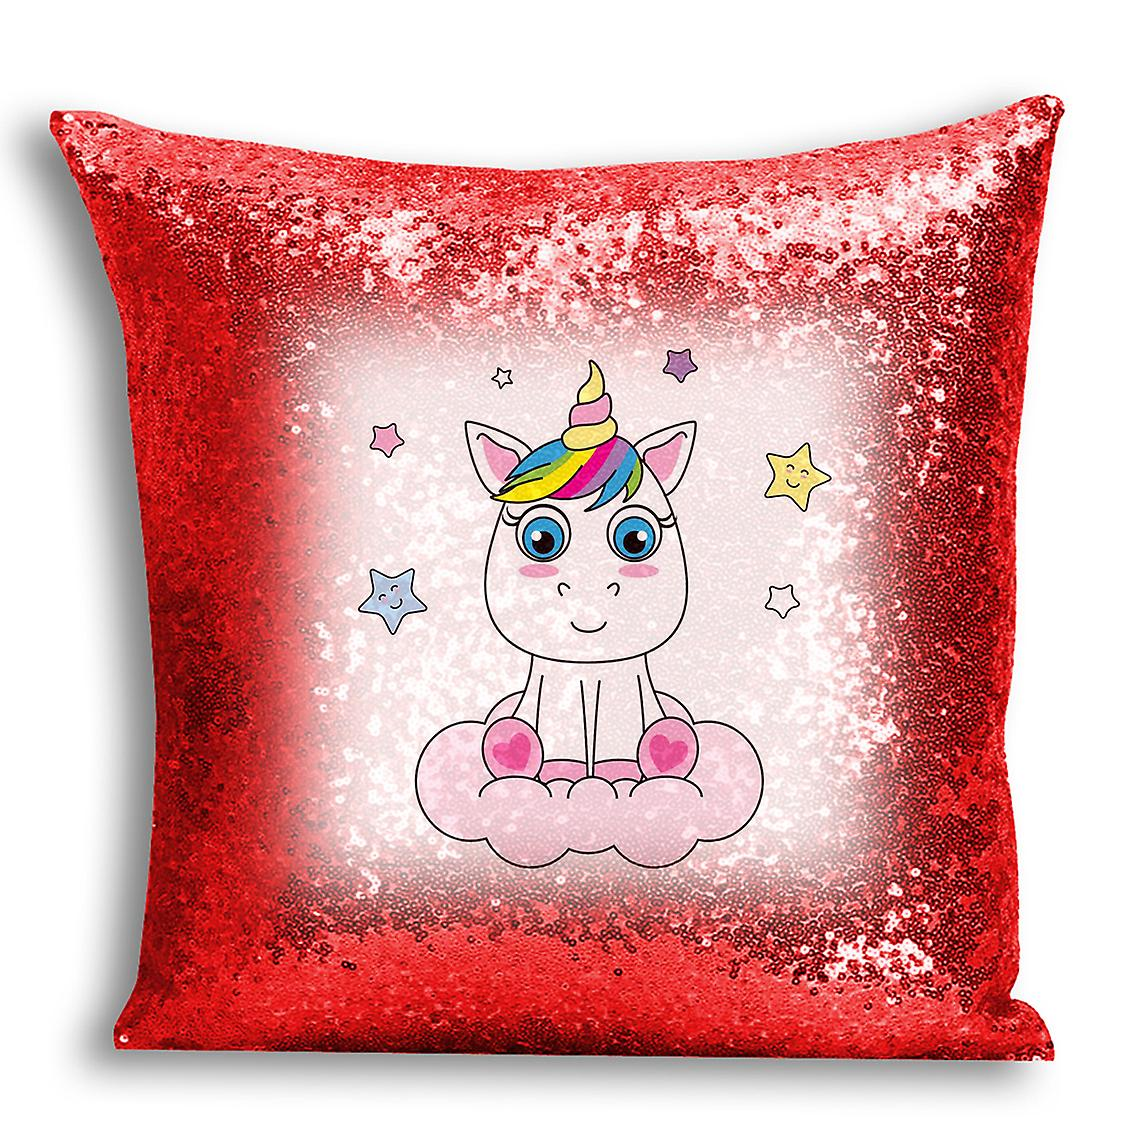 For Red Printed Sequin Home Decor I Design With 8 Inserted tronixsUnicorn CushionPillow Cover Yfgyvb76